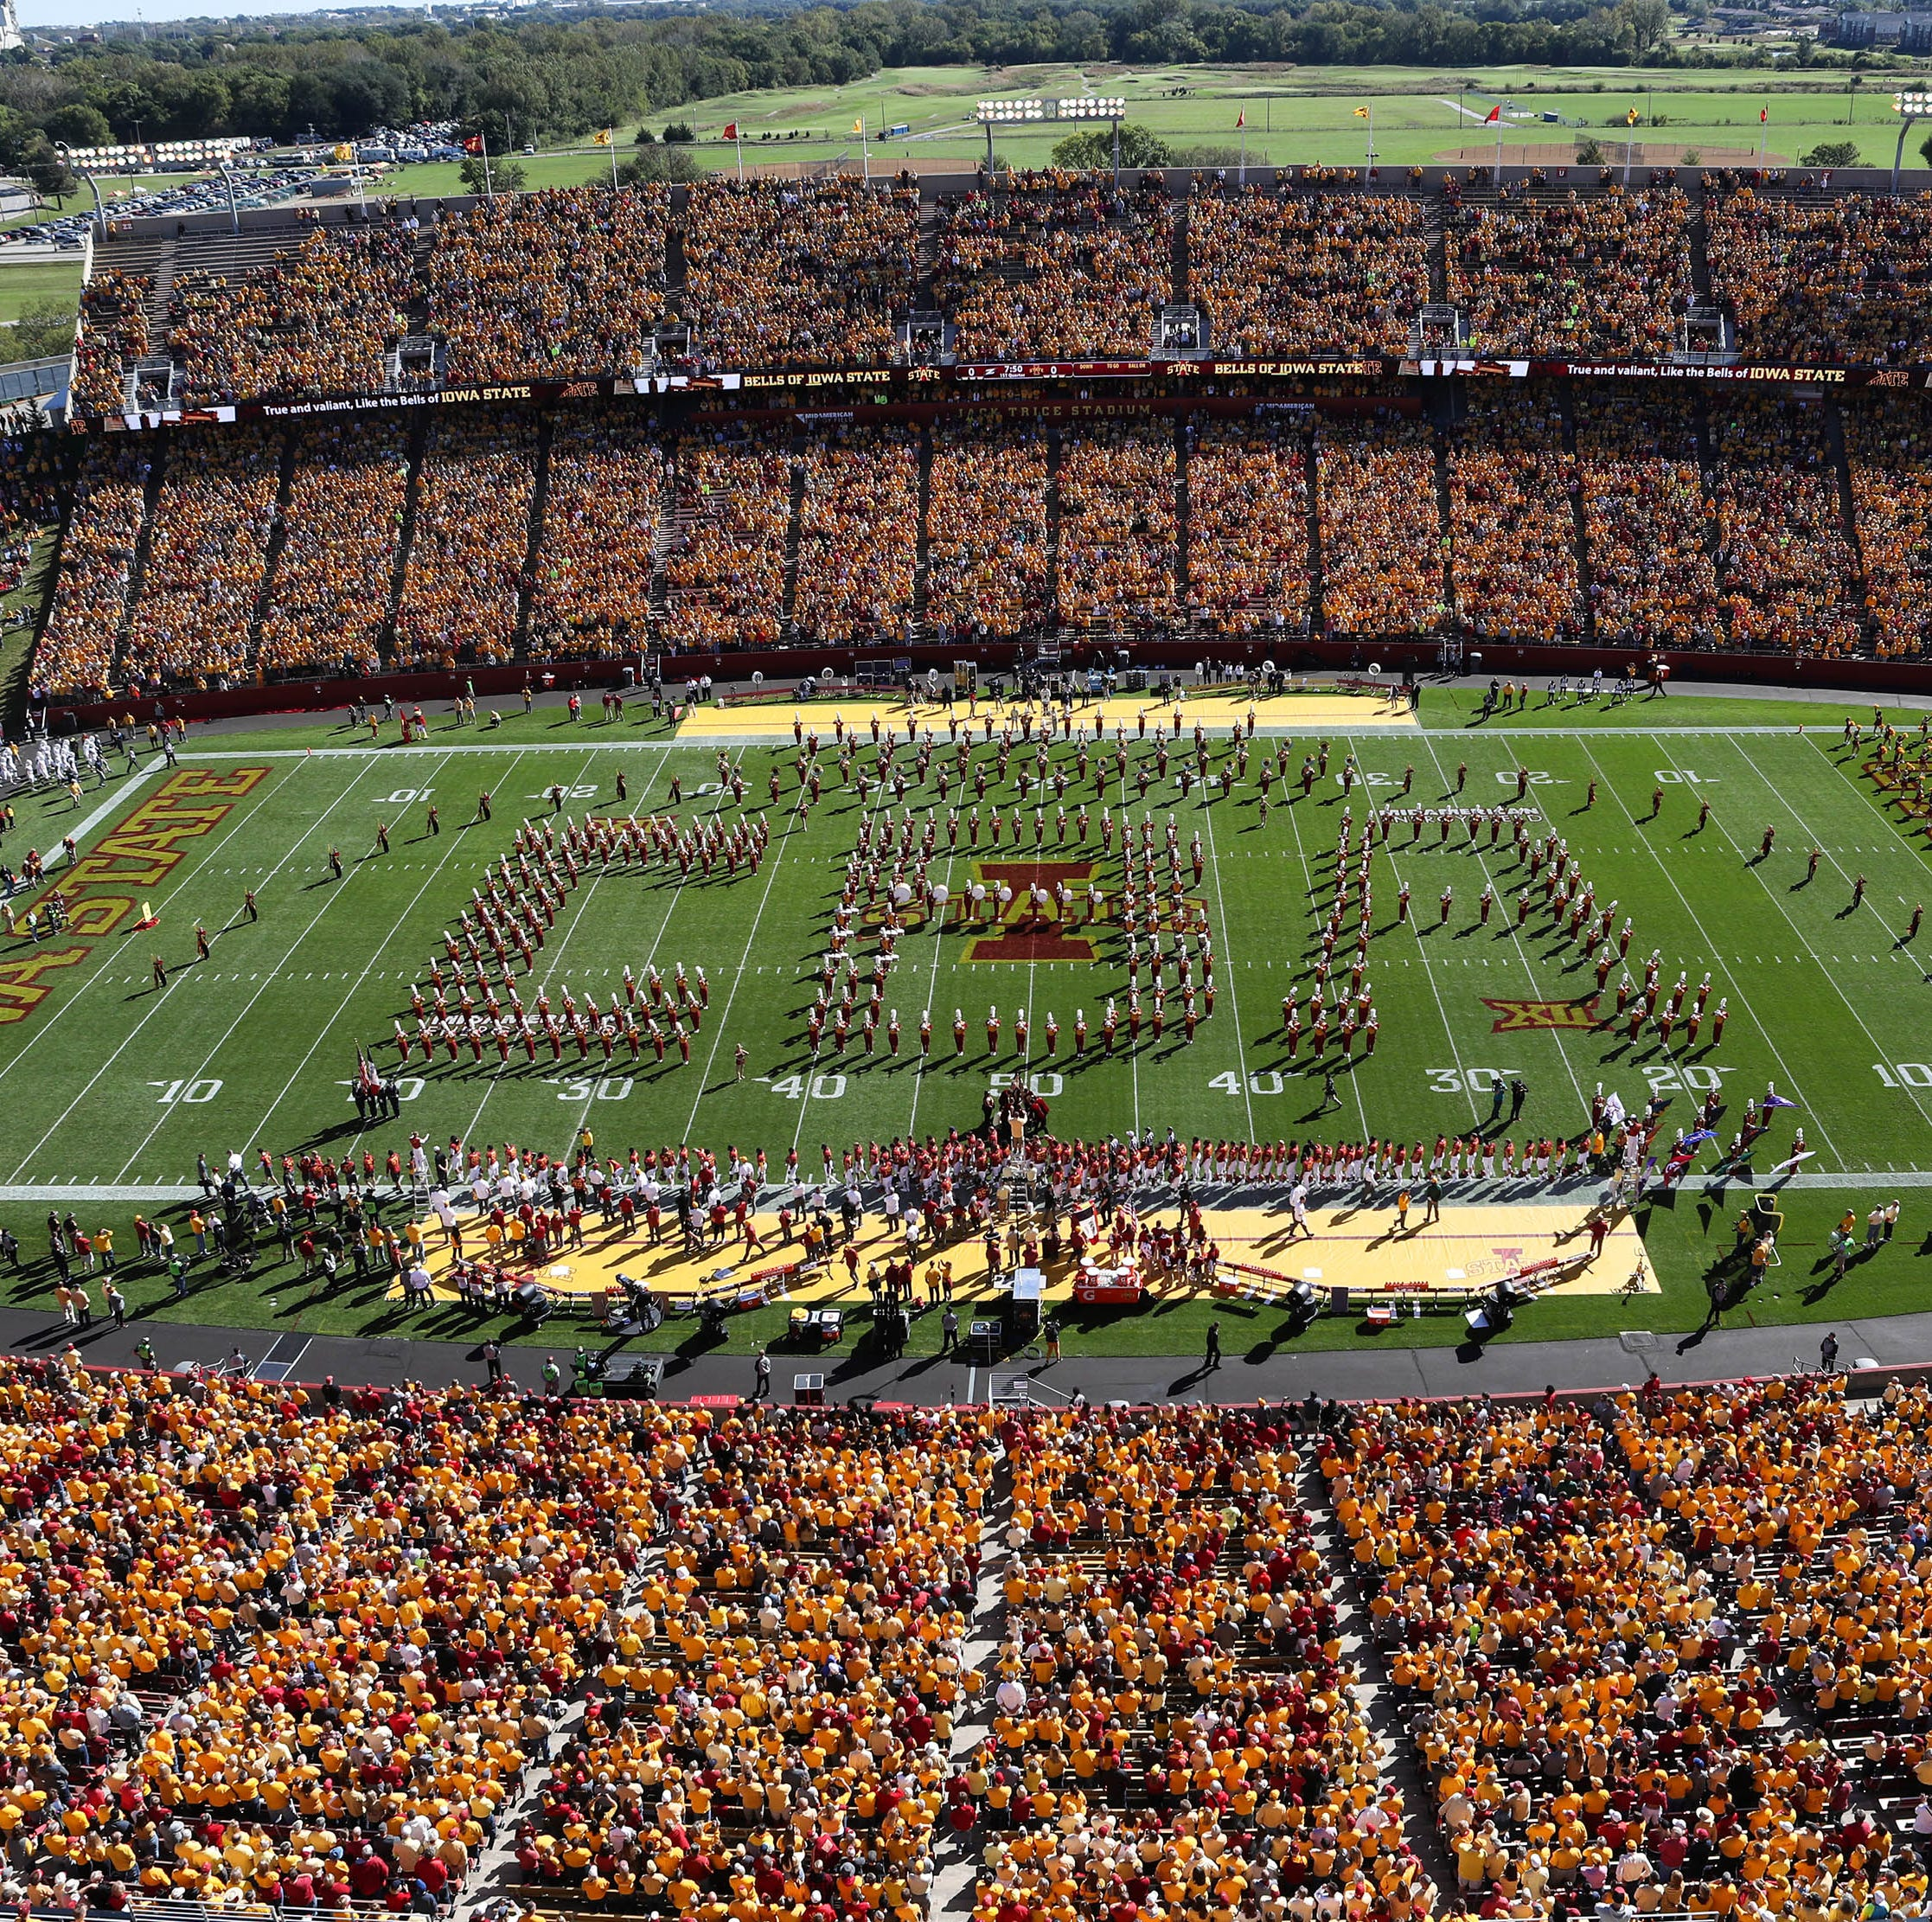 'We're one big family': Clad in yellow, Iowa State fans show support for slain student